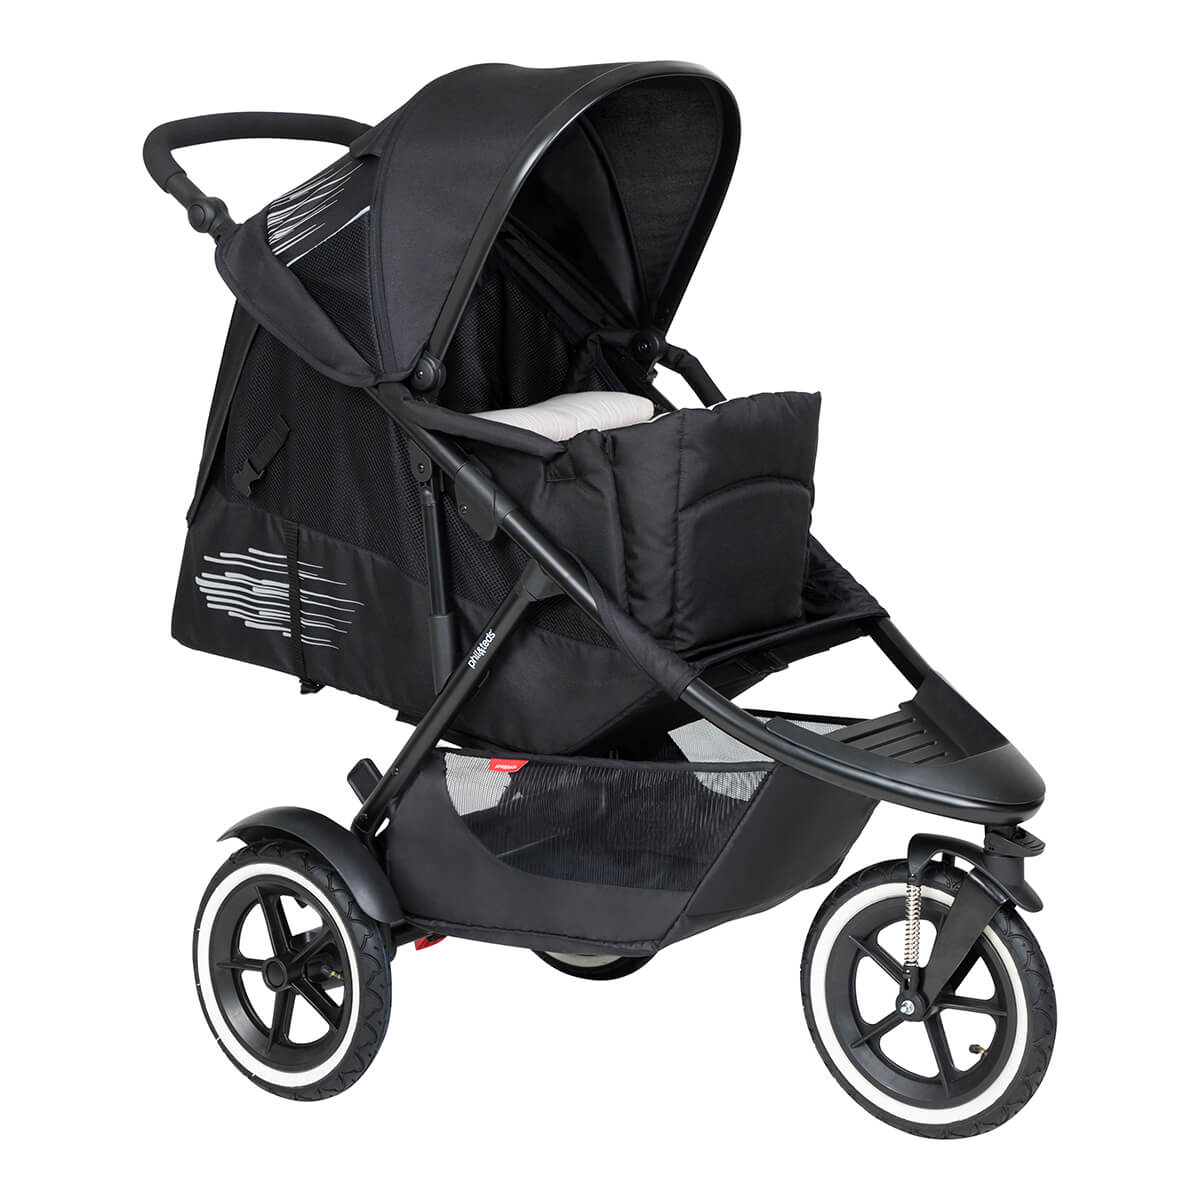 https://cdn.accentuate.io/4513463205984/19440099360952/philteds-sport-buggy-with-cocoon-full-recline-v1626486610745.jpg?1200x1200